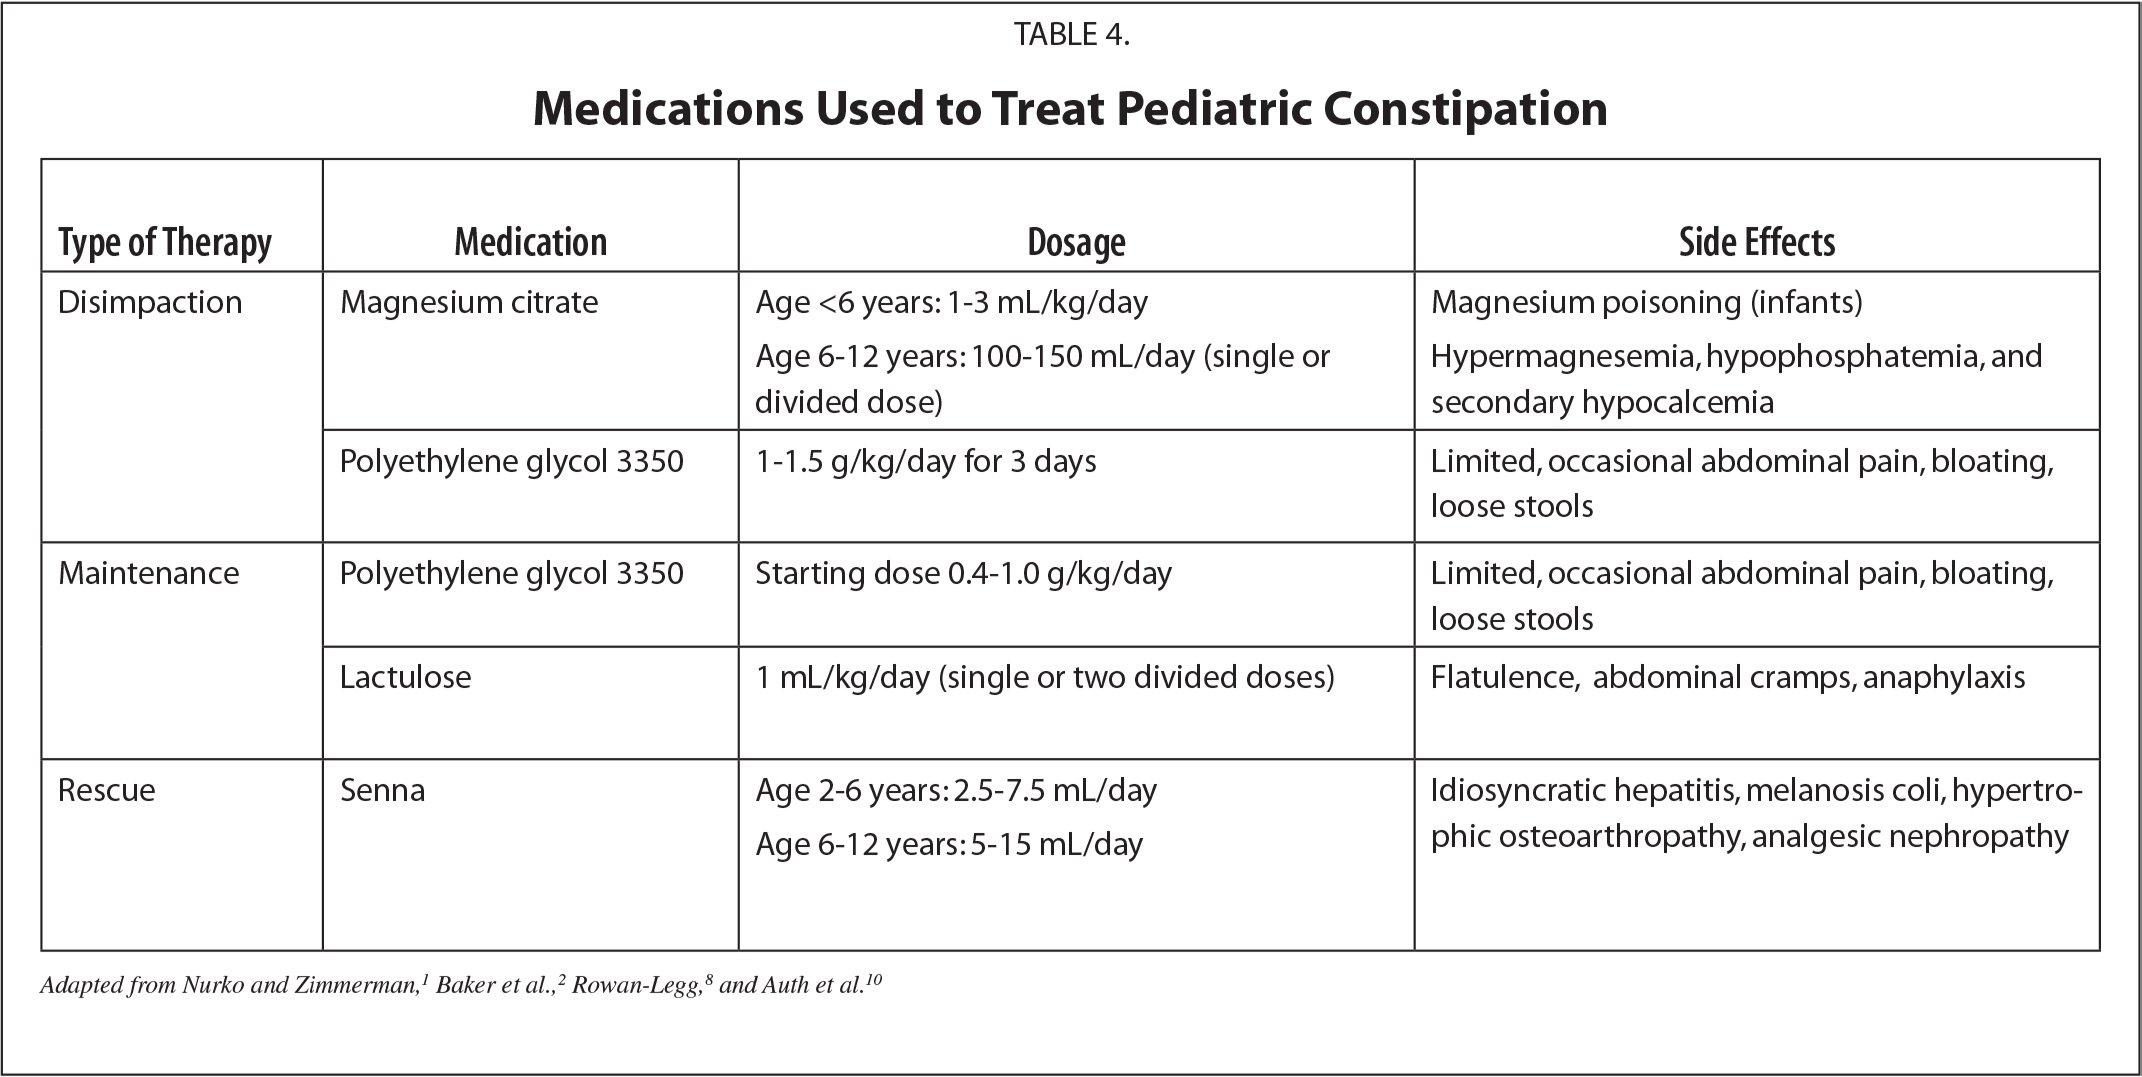 Medications Used to Treat Pediatric Constipation